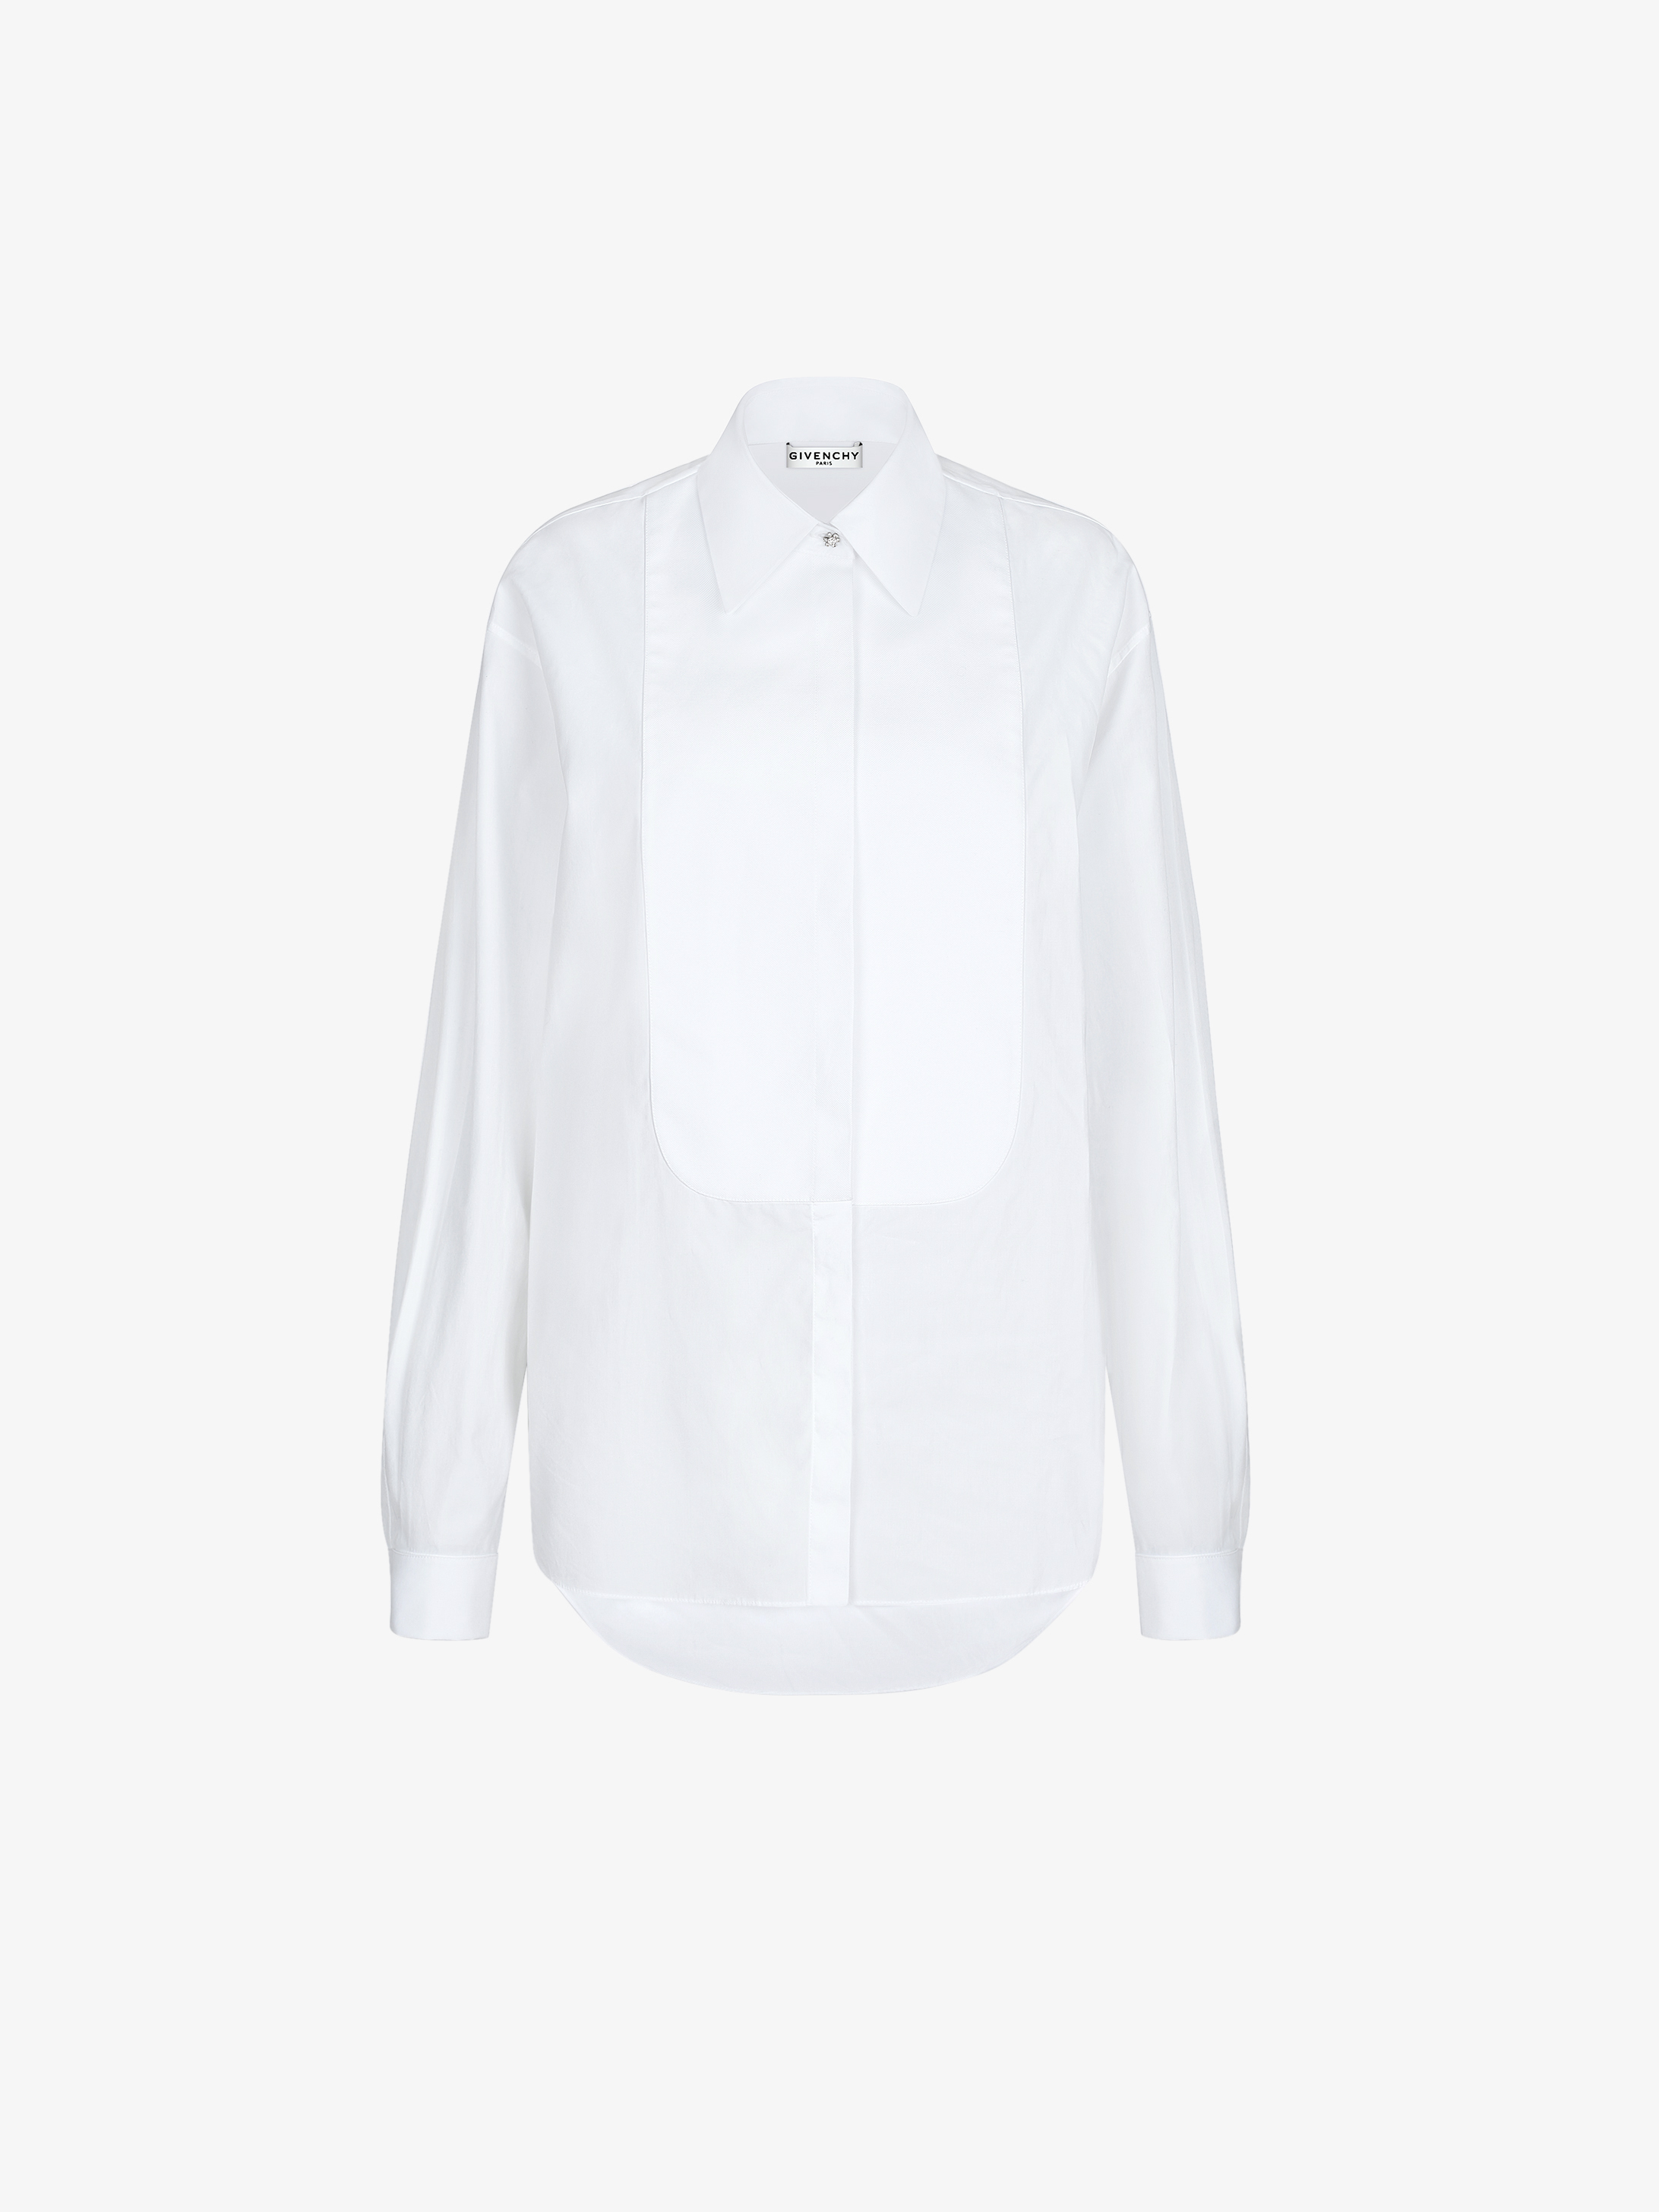 Shirt in poplin with plastron and jewels buttons